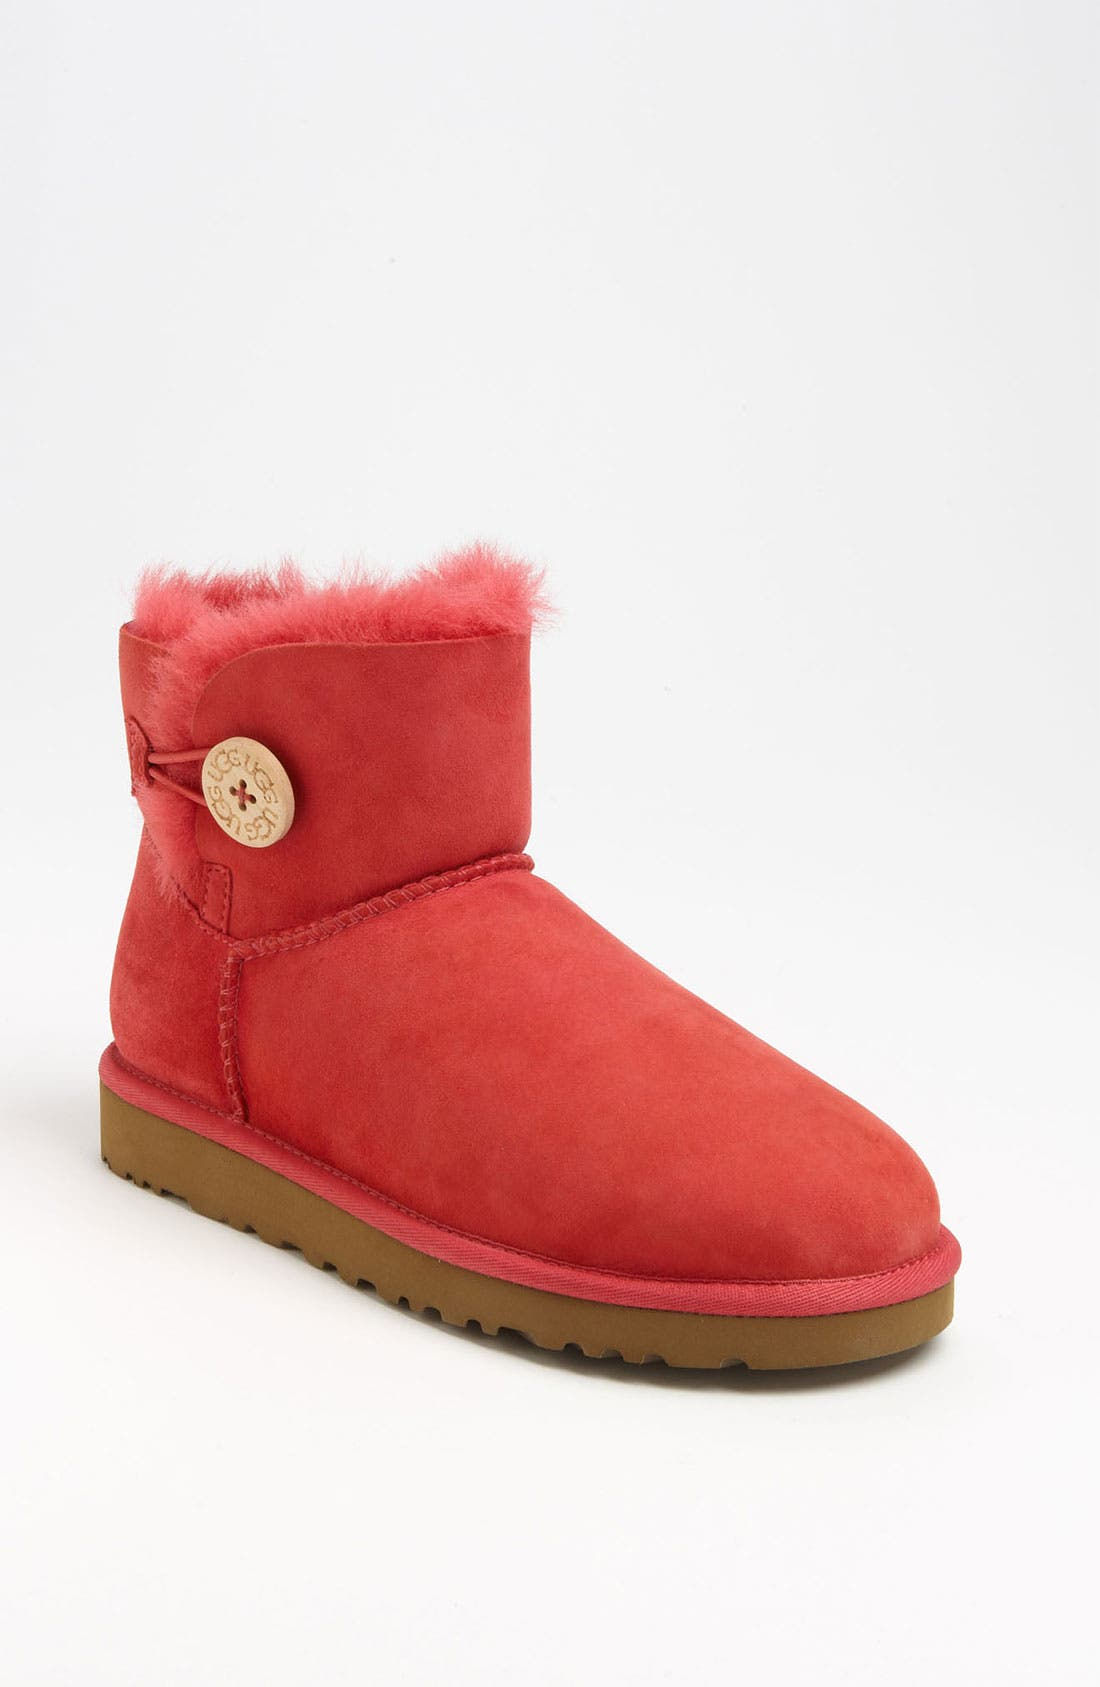 Alternate Image 1 Selected - UGG® 'Mini Bailey Button' Boot (Women)